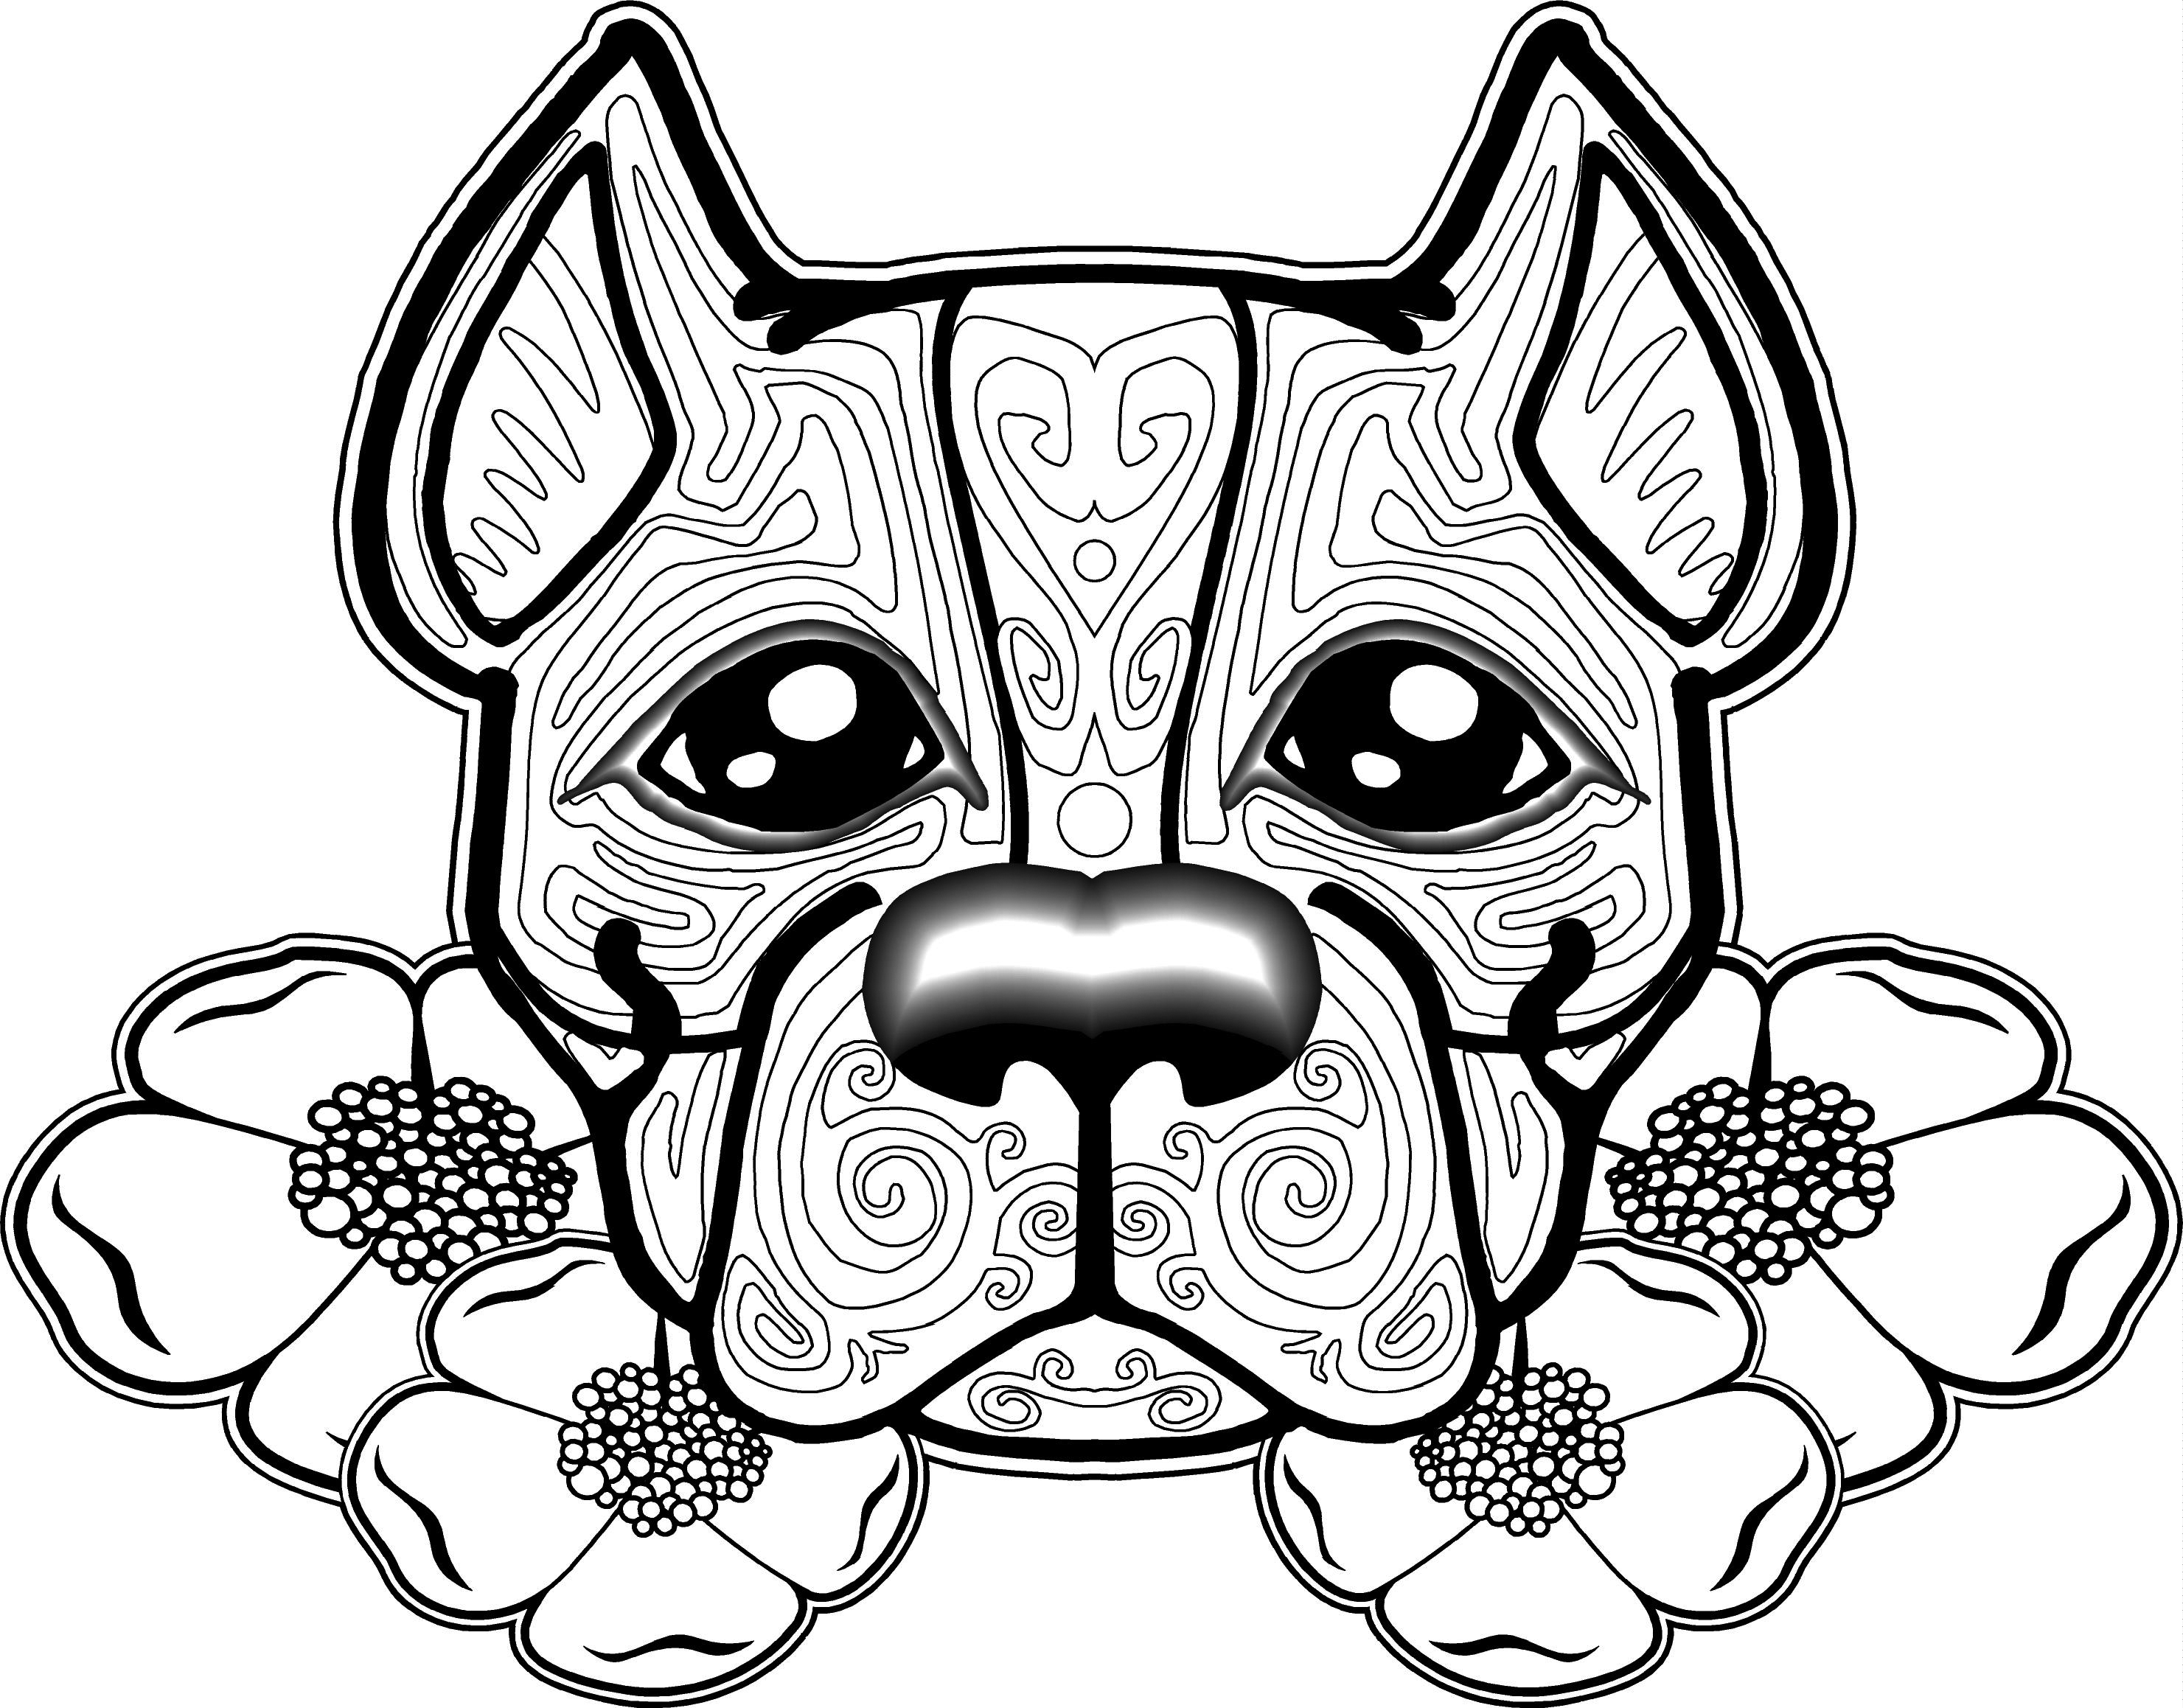 2961x2317 Awesome Sad Face Coloring Page Free Coloring Pages Download